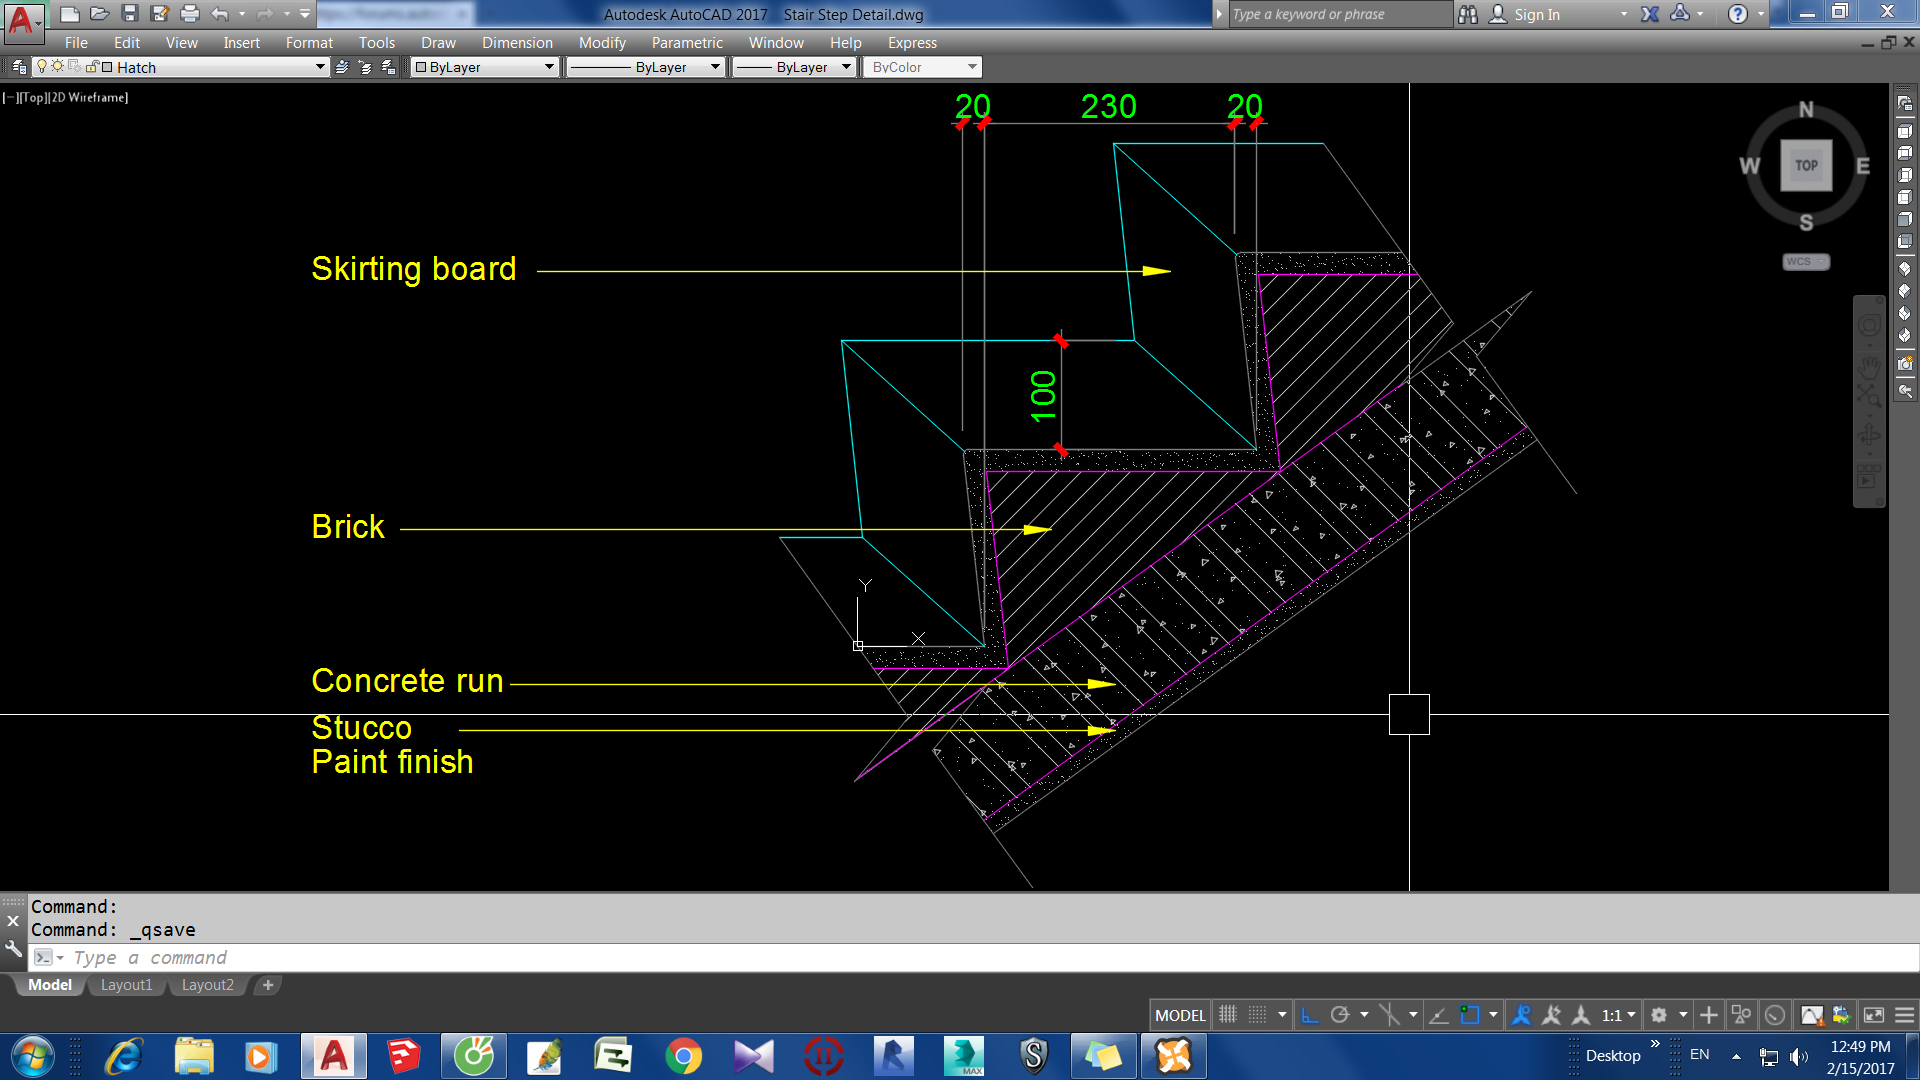 Stair step detail - Autodesk Community- Revit Products